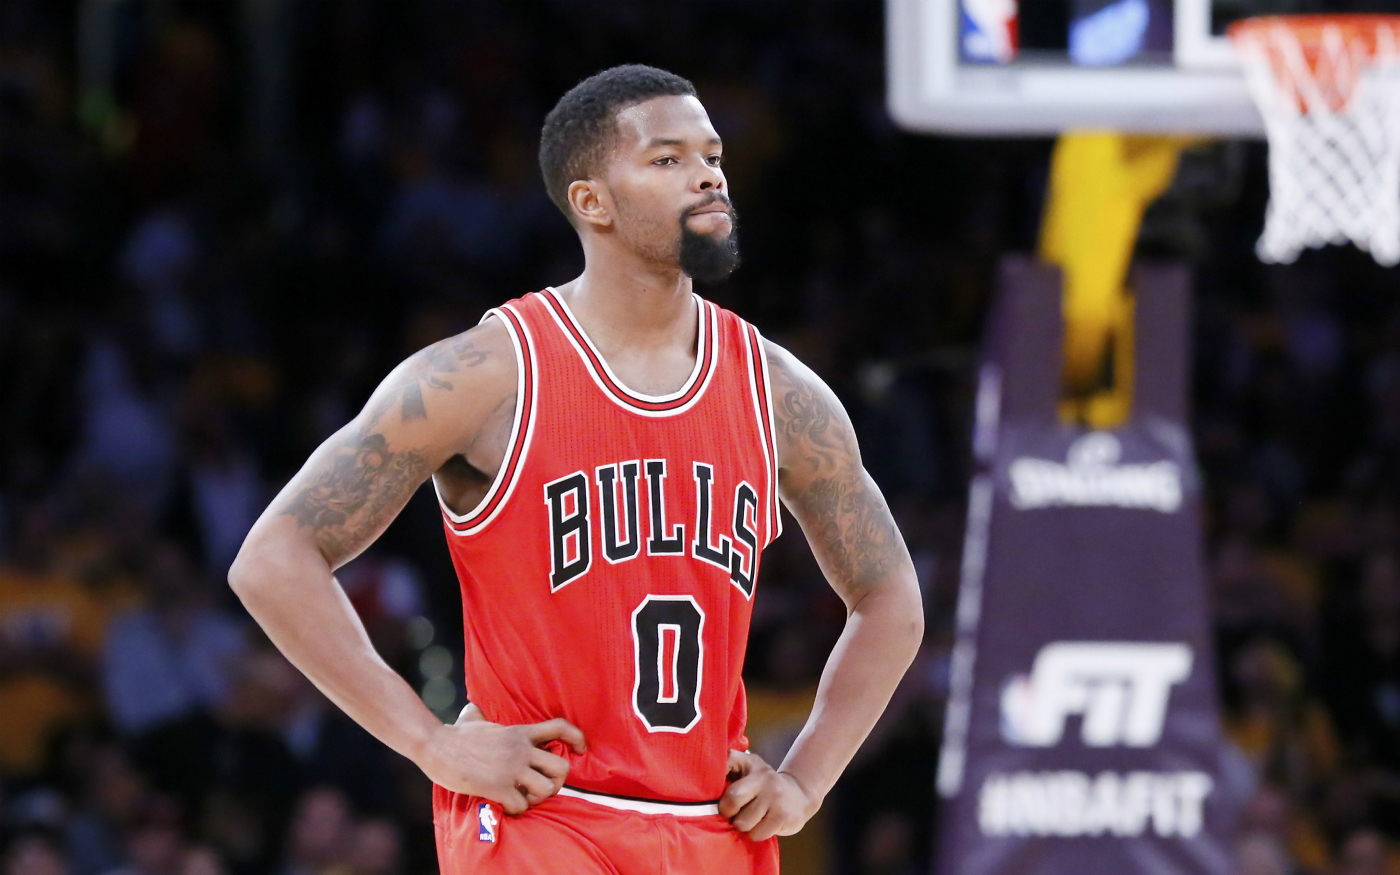 Aaron Brooks rejoint les Indiana Pacers